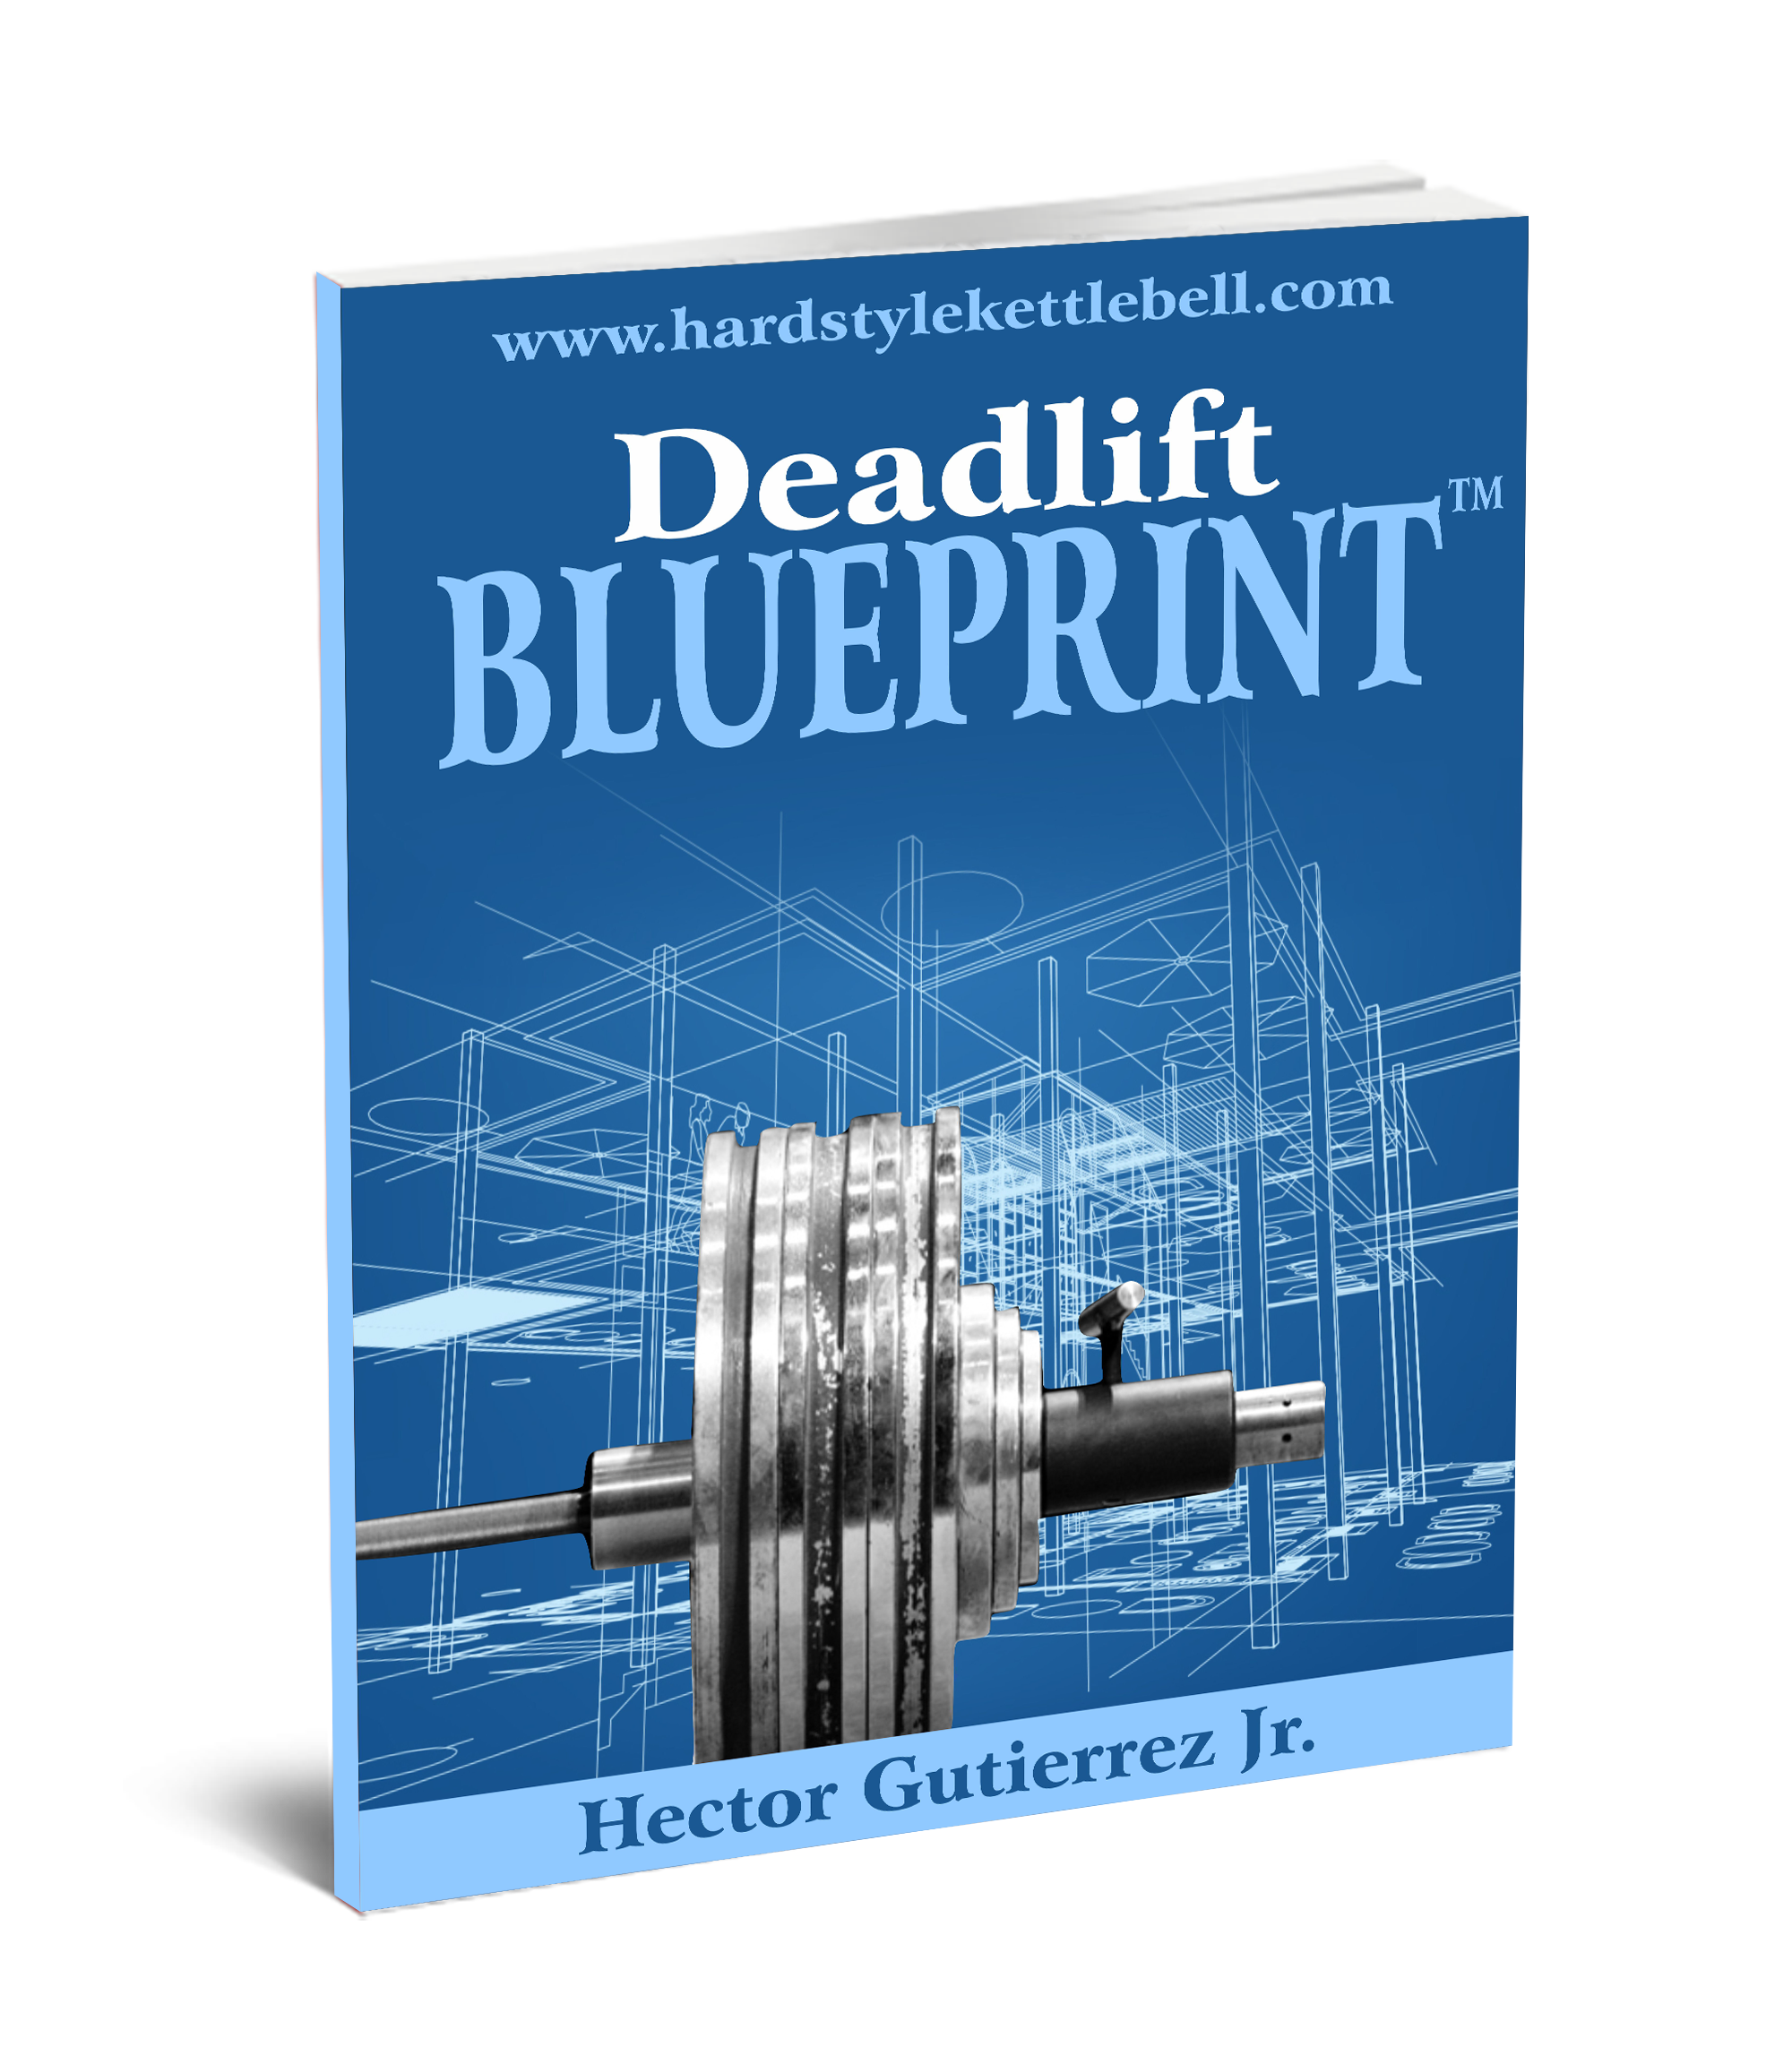 deadlift blueprint, how to deadlift, sumo deadlift, strength training, fat loss, weight loss